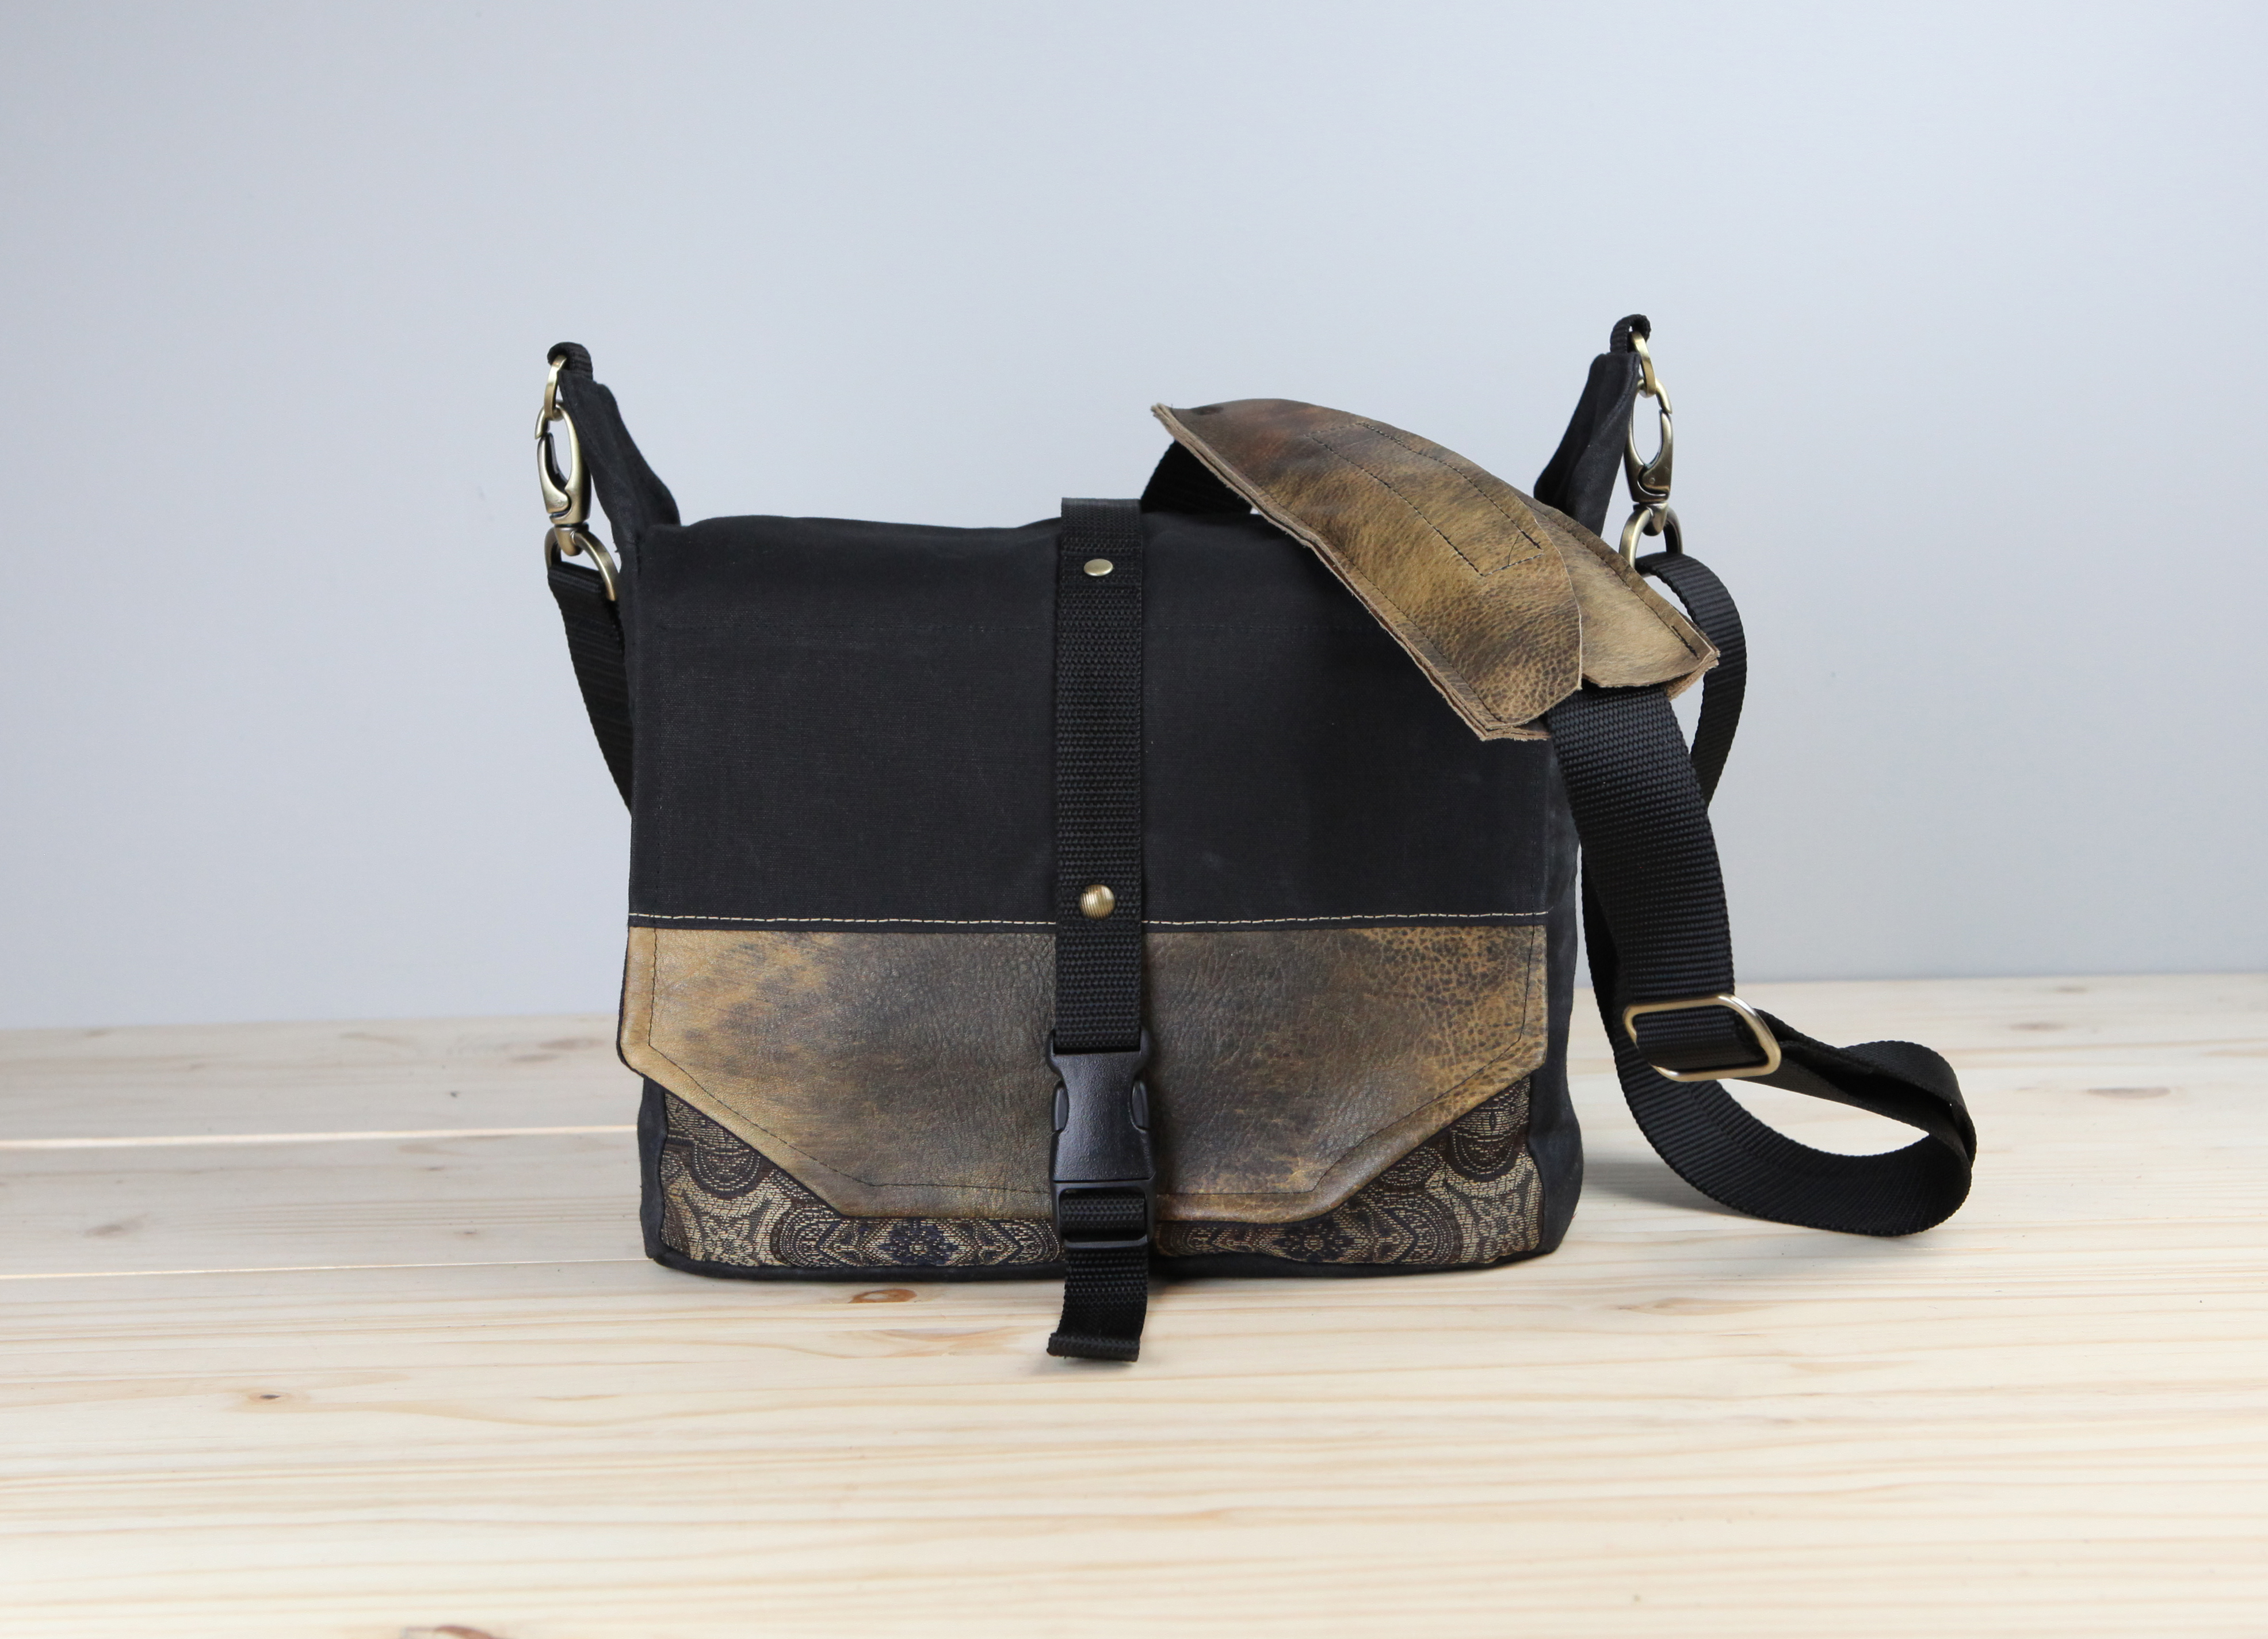 82bf68b12222 Handmade Travel Camera Bag Backpack Packable Camera Bag Waxed Canvas and  Leather